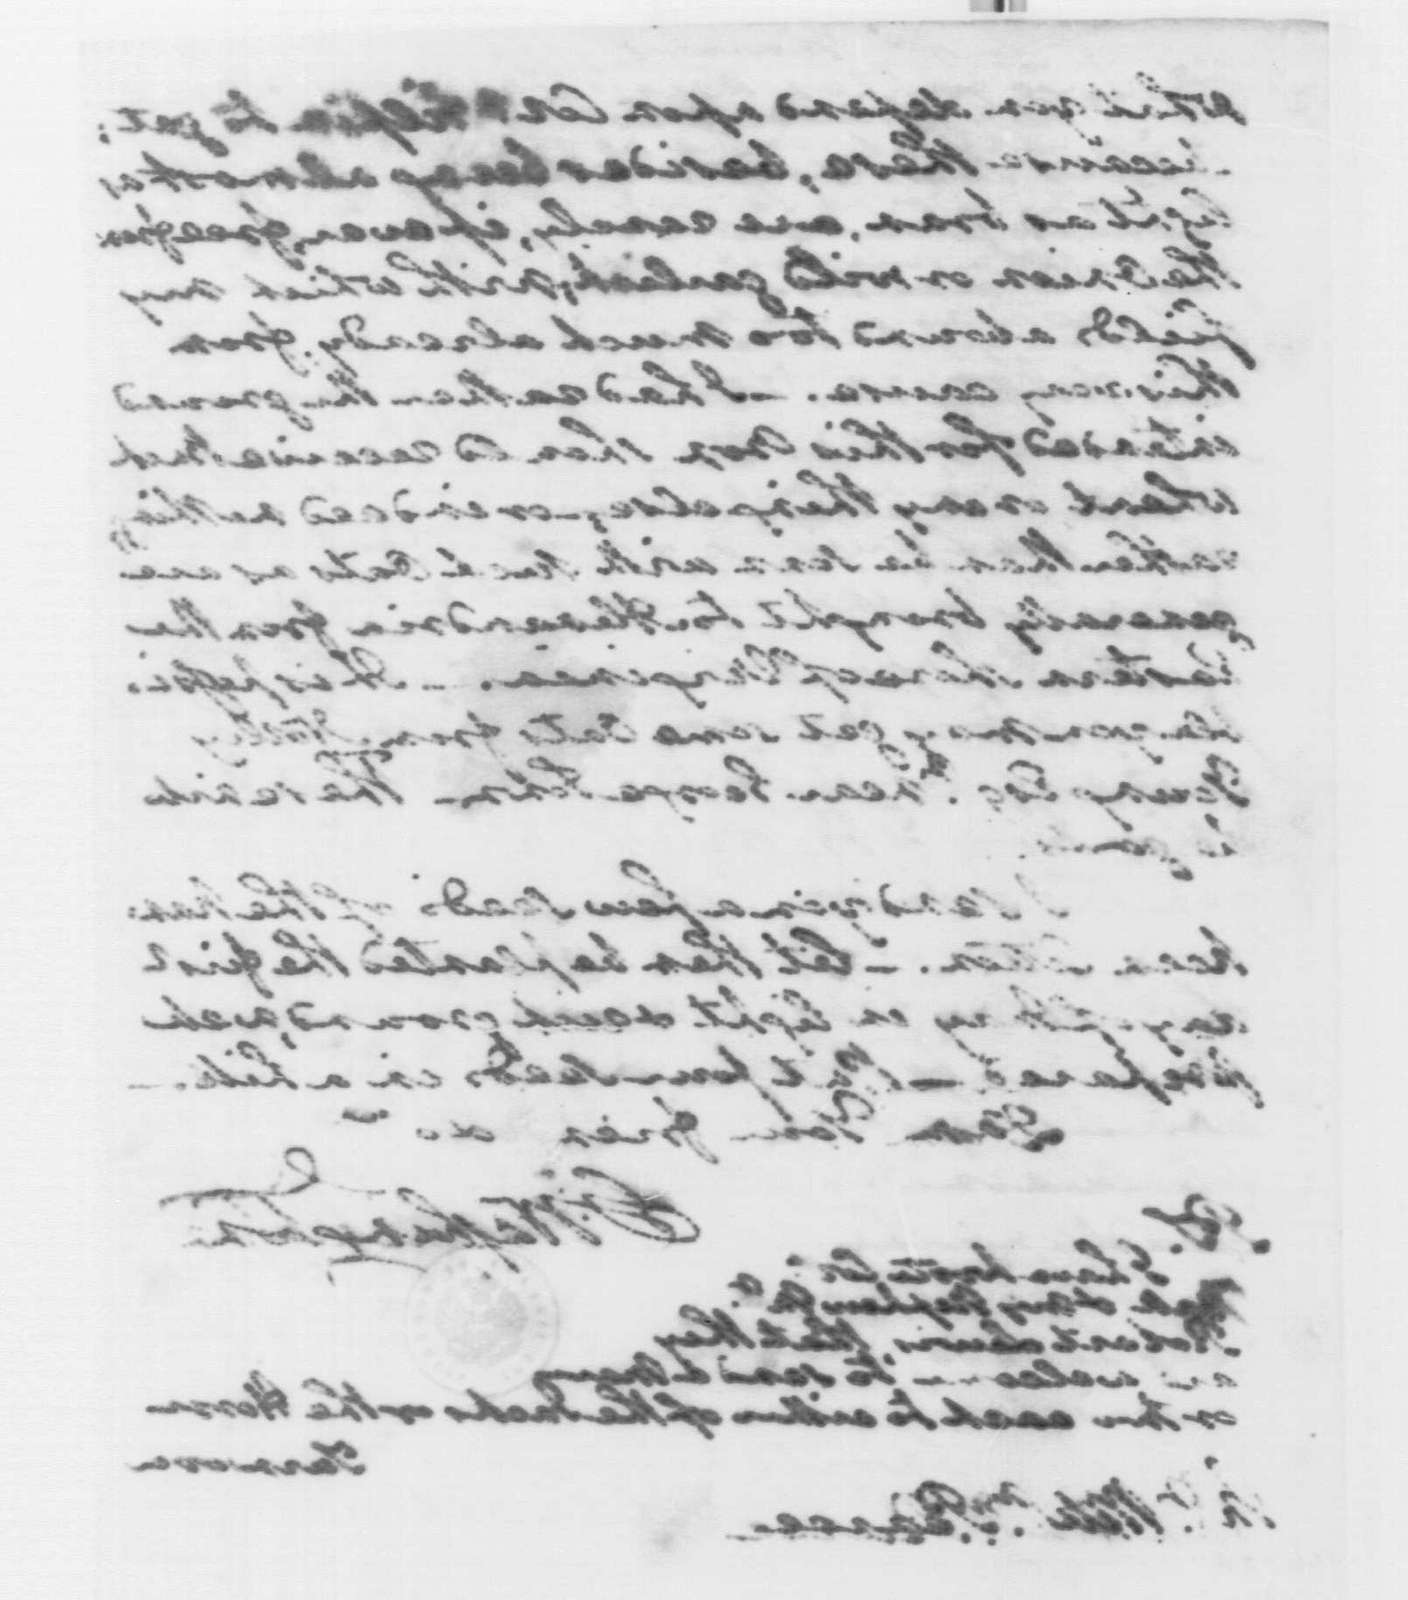 George Washington Papers, Series 4, General Correspondence: George Washington to William Pearce, March 16, 1794